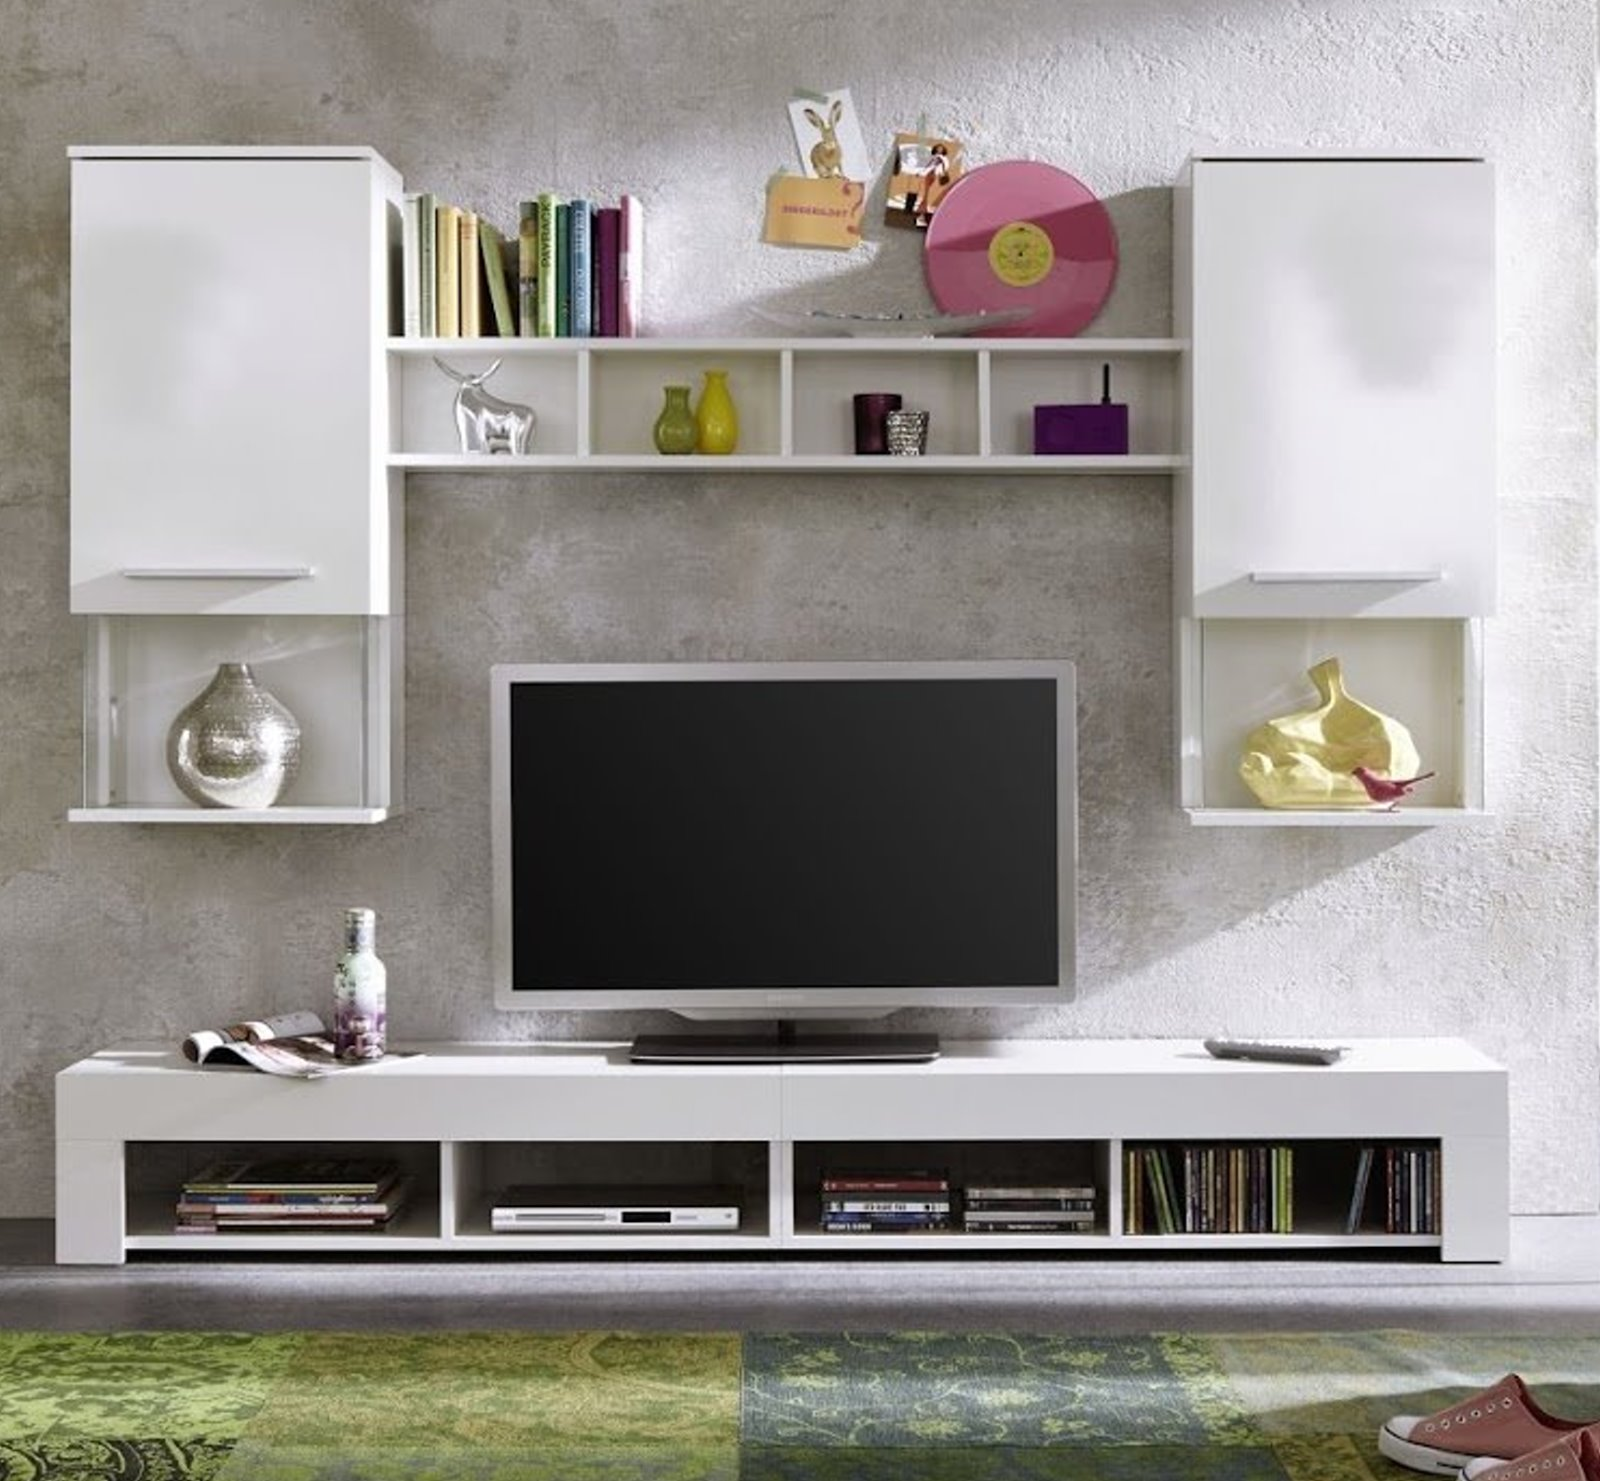 wohnwand anbauwand wohnzimmer tv schrank schrankwand wohnwand hochglanz wei kaufen bei dtg. Black Bedroom Furniture Sets. Home Design Ideas